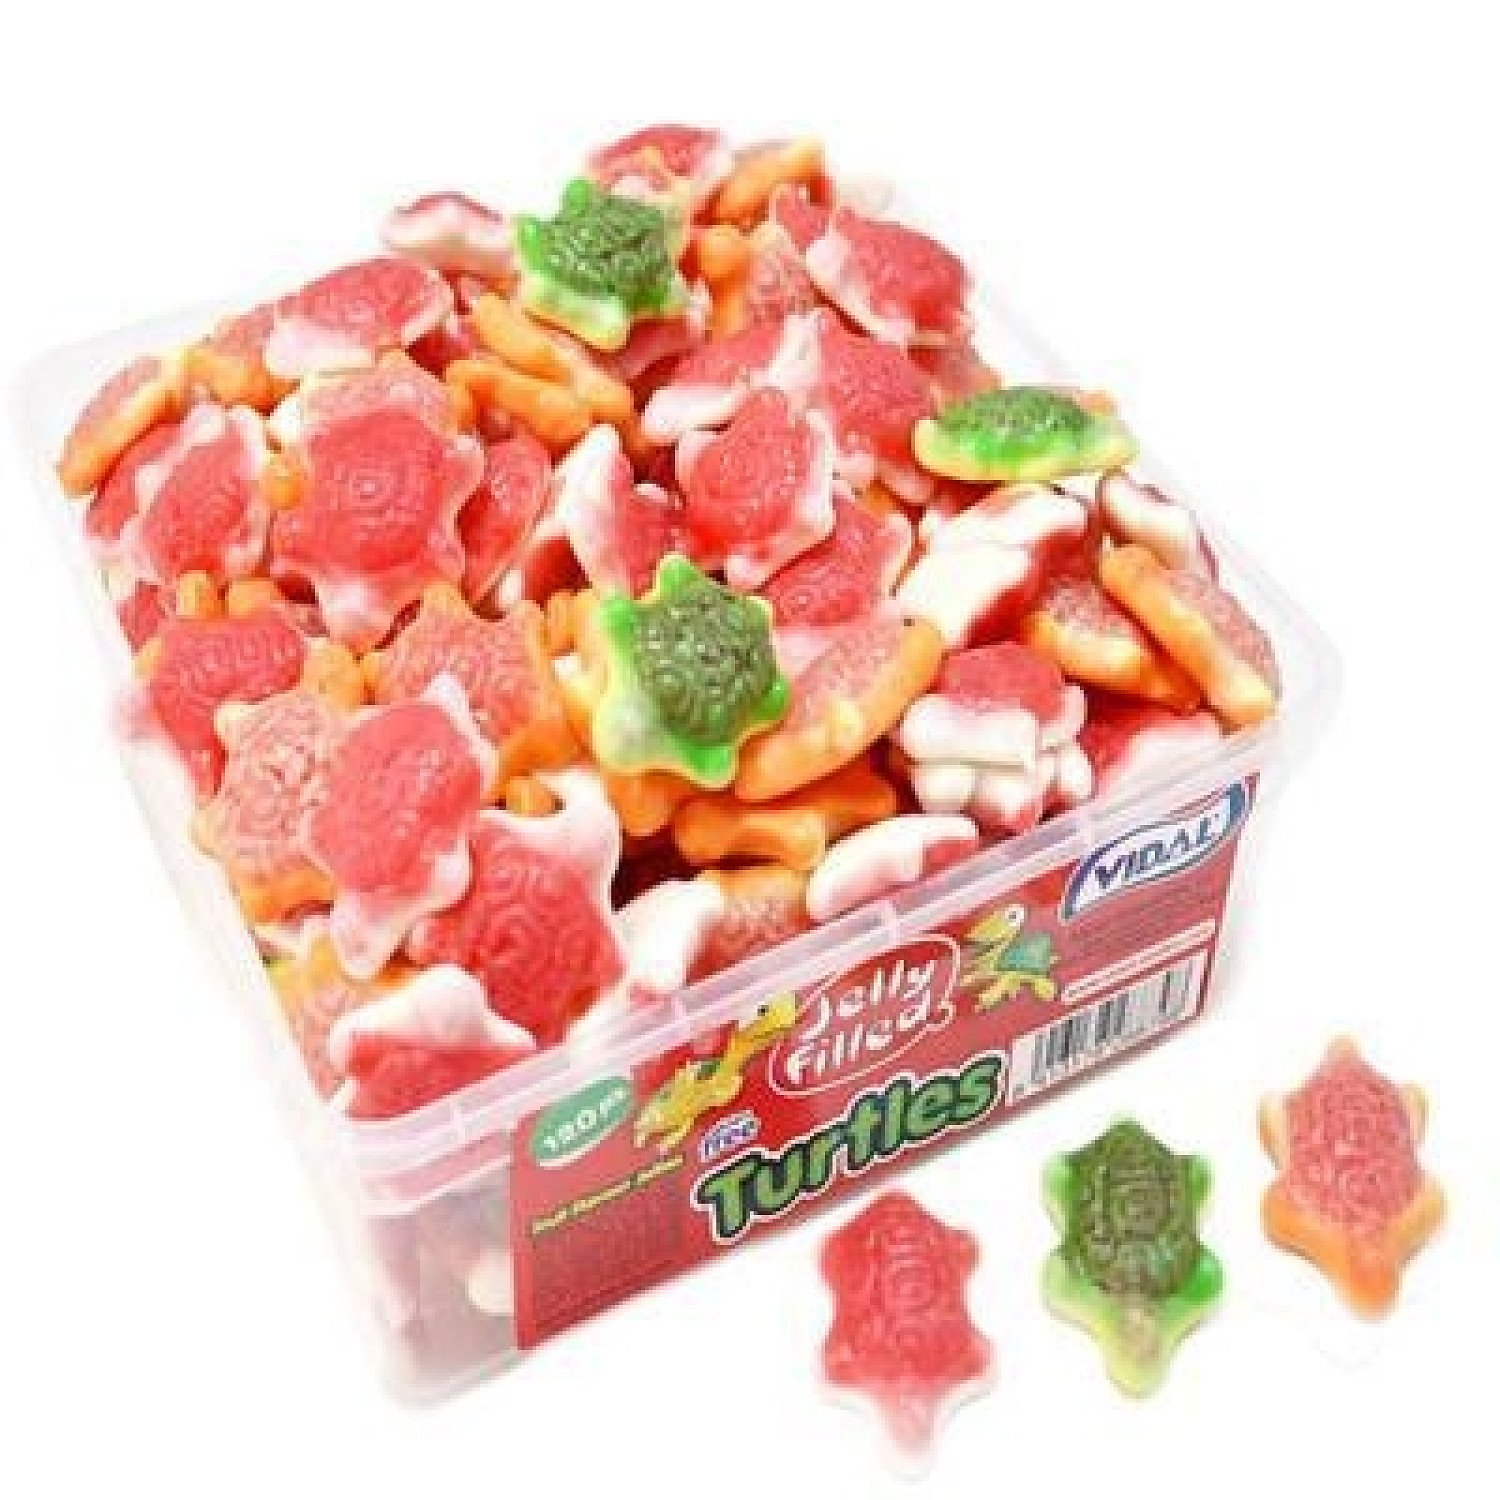 JELLY FILLED TURTLES (VIDAL) 120 COUNT